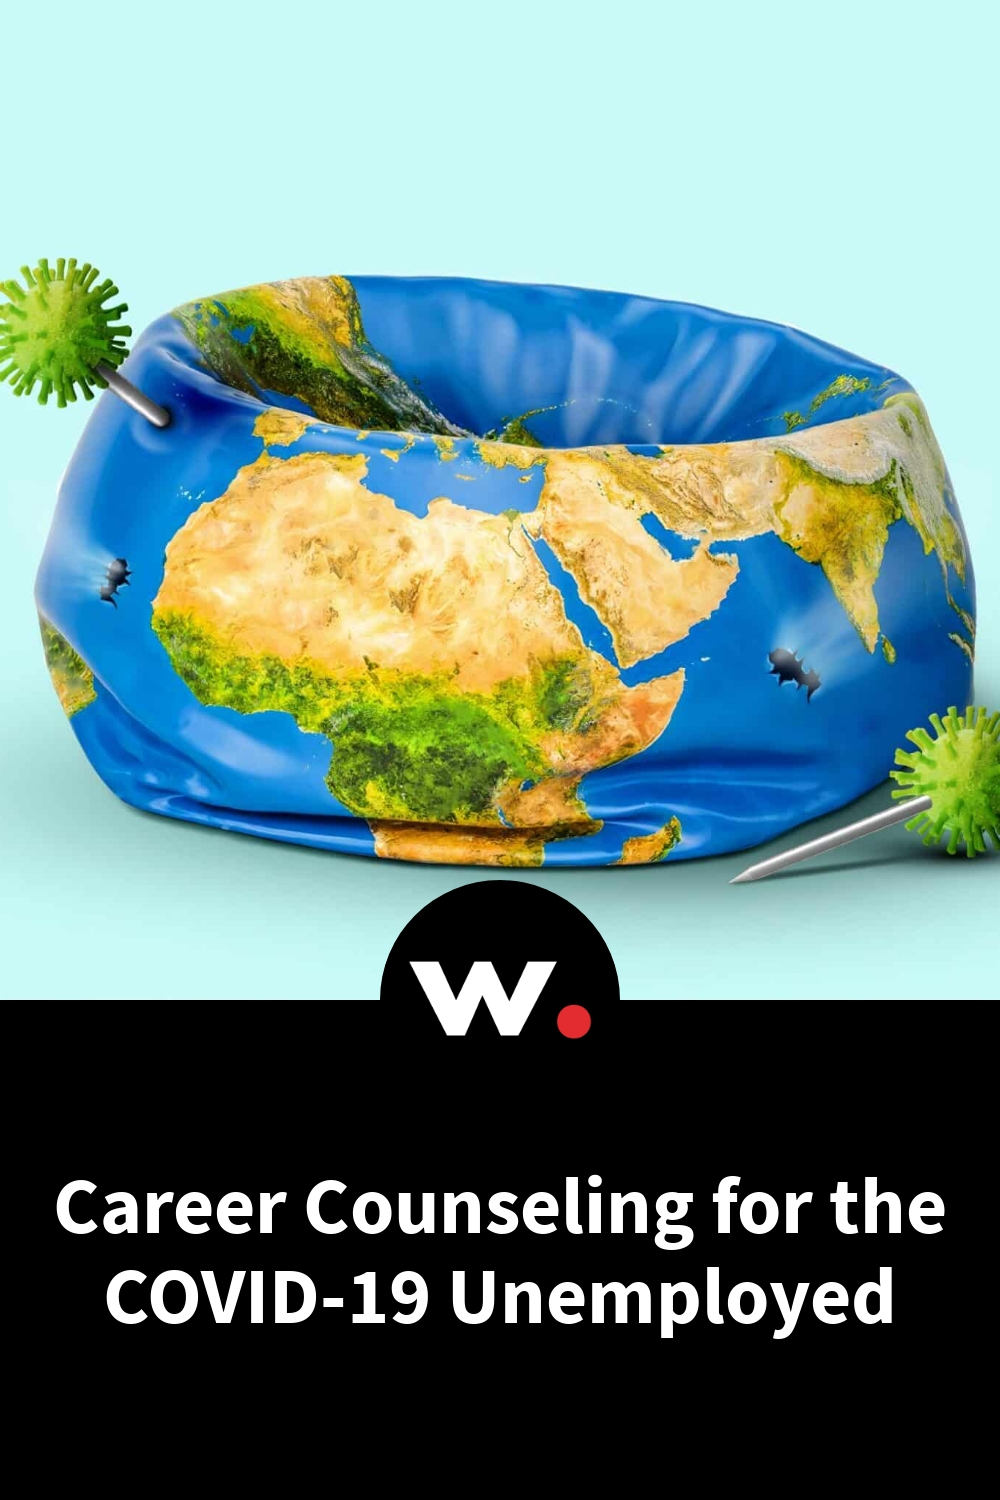 Career Counseling for the COVID-19 Unemployed